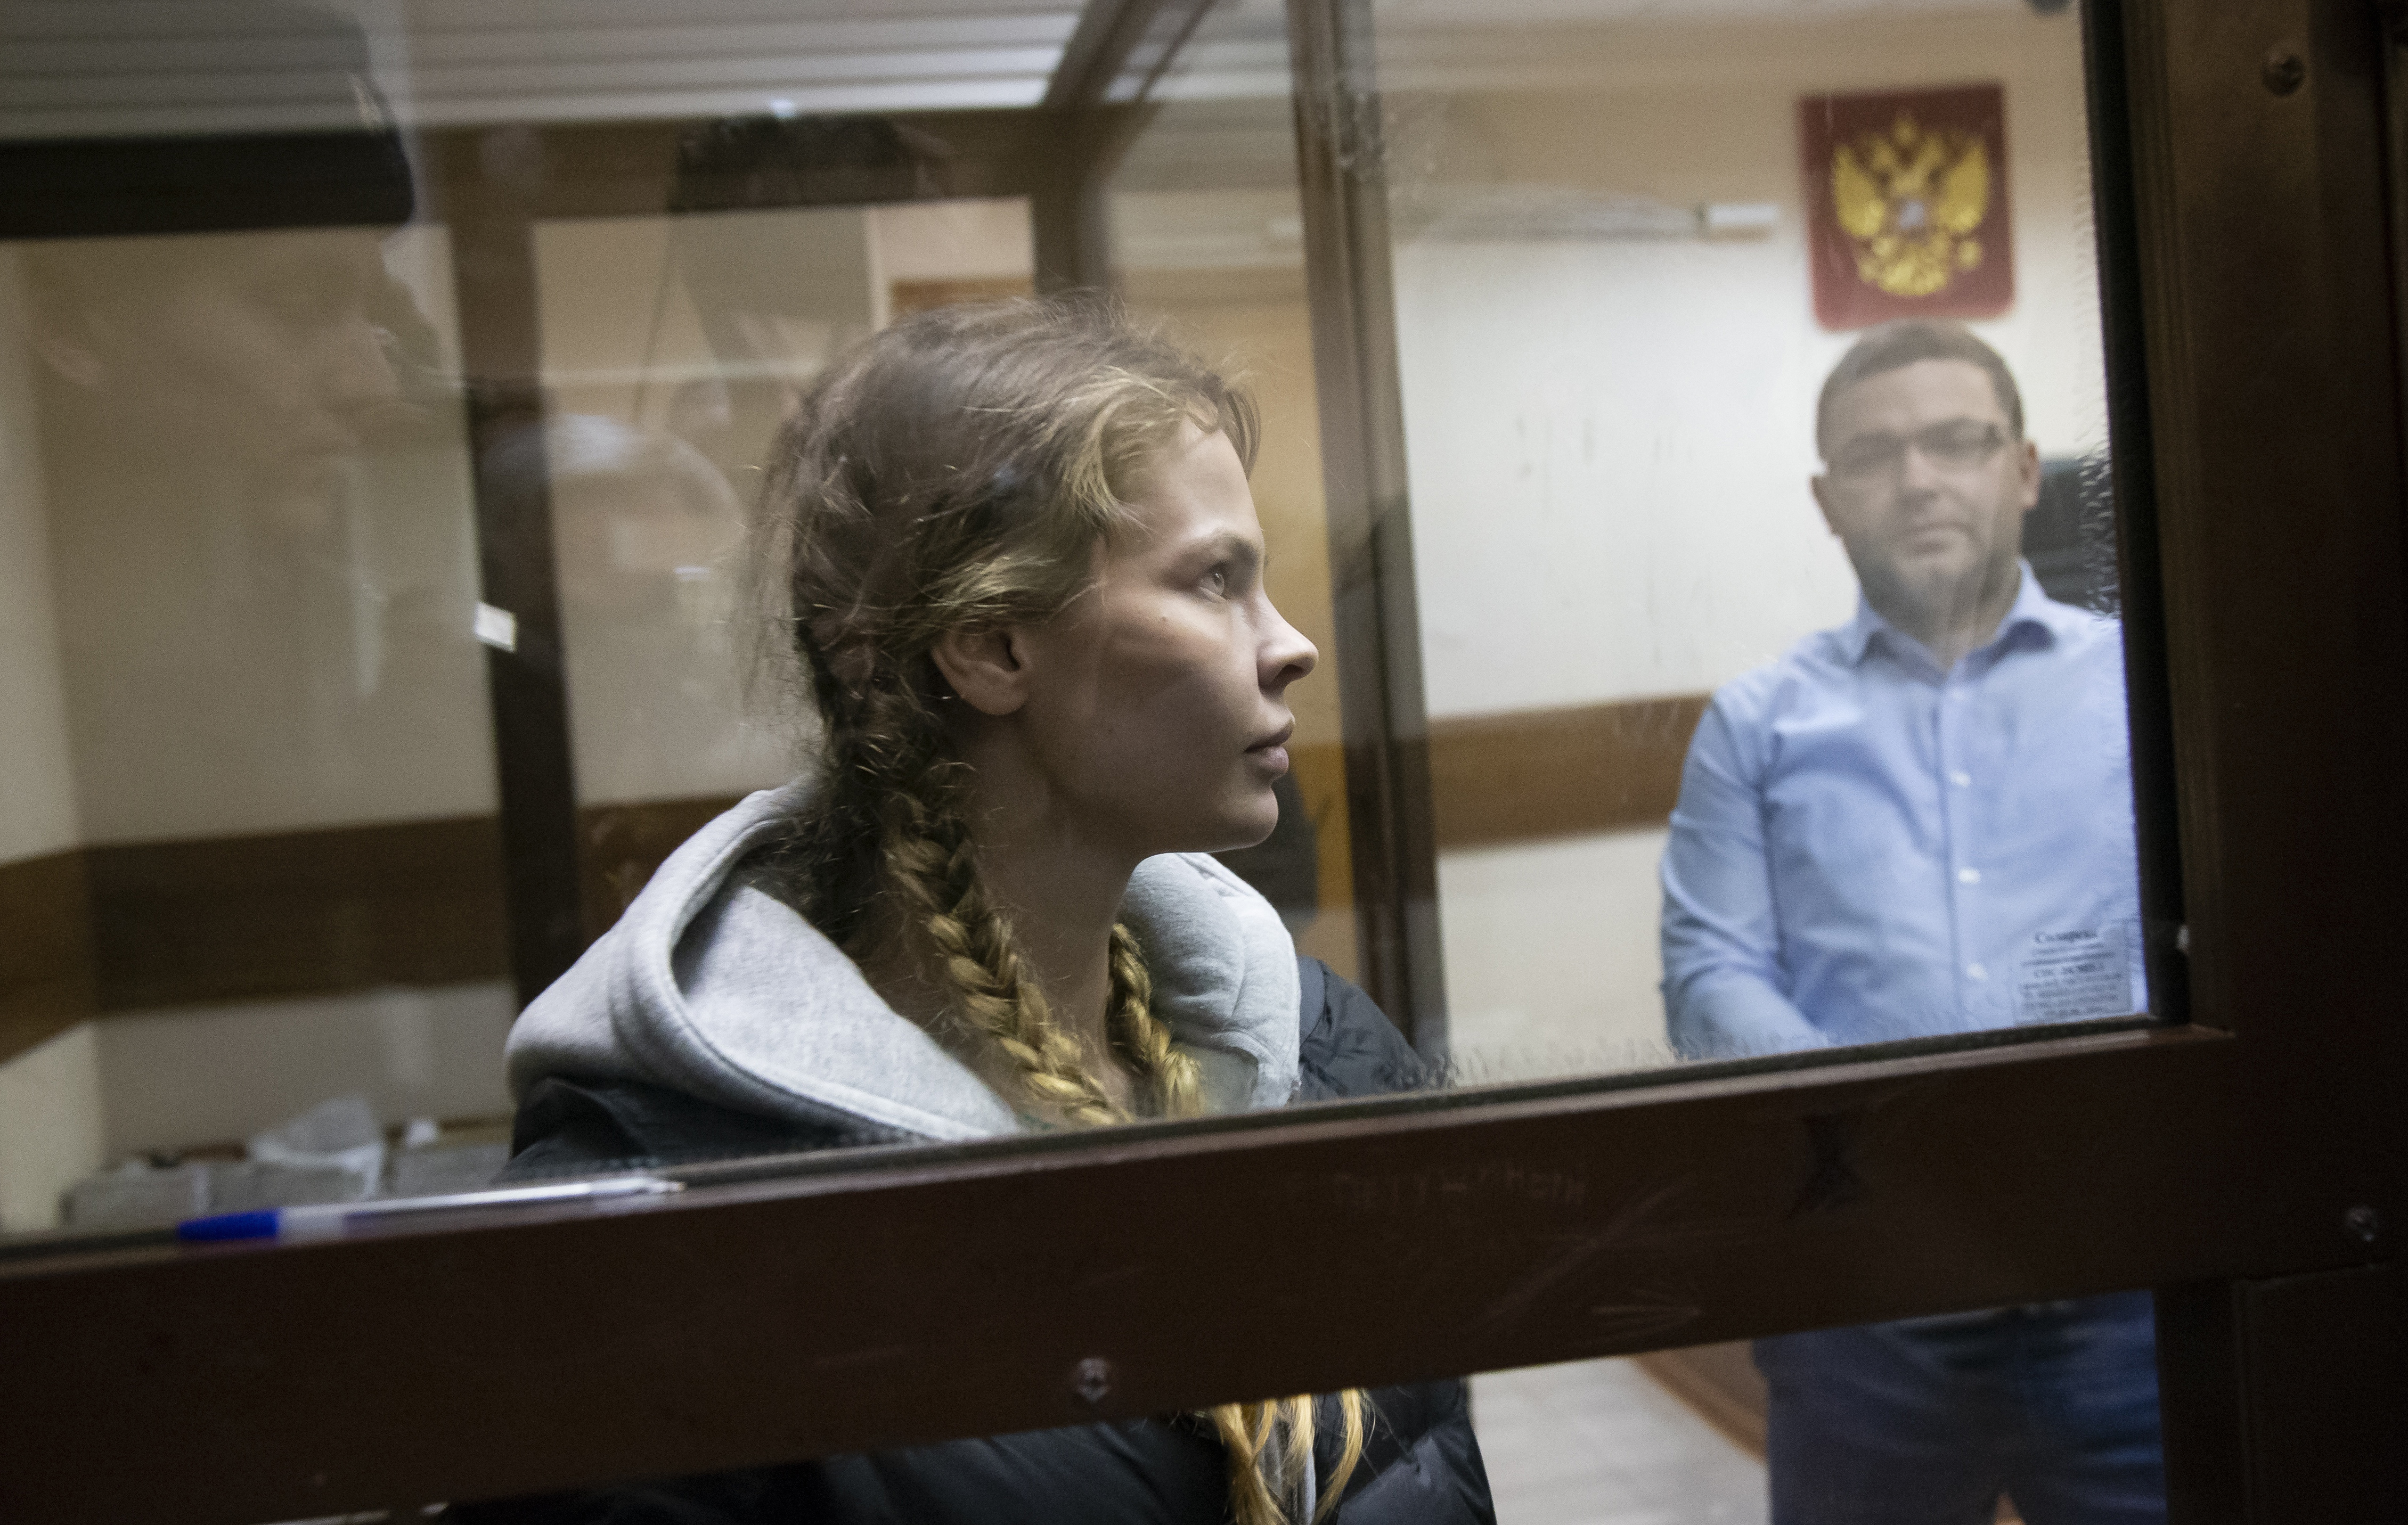 Anastasia Vashukevich, also known on social media as Nastya Rybka, waits for a court session in the court room in Moscow, Russia, Saturday, Jan.19, 2019. A Belarusian model who claimed last year that she had evidence of Russian interference in the election of Donald Trump as U.S. president was arrested immediately upon her arrival in Moscow on Thursday following deportation from Thailand. (AP Photo/Alexander Zemlianichenko)